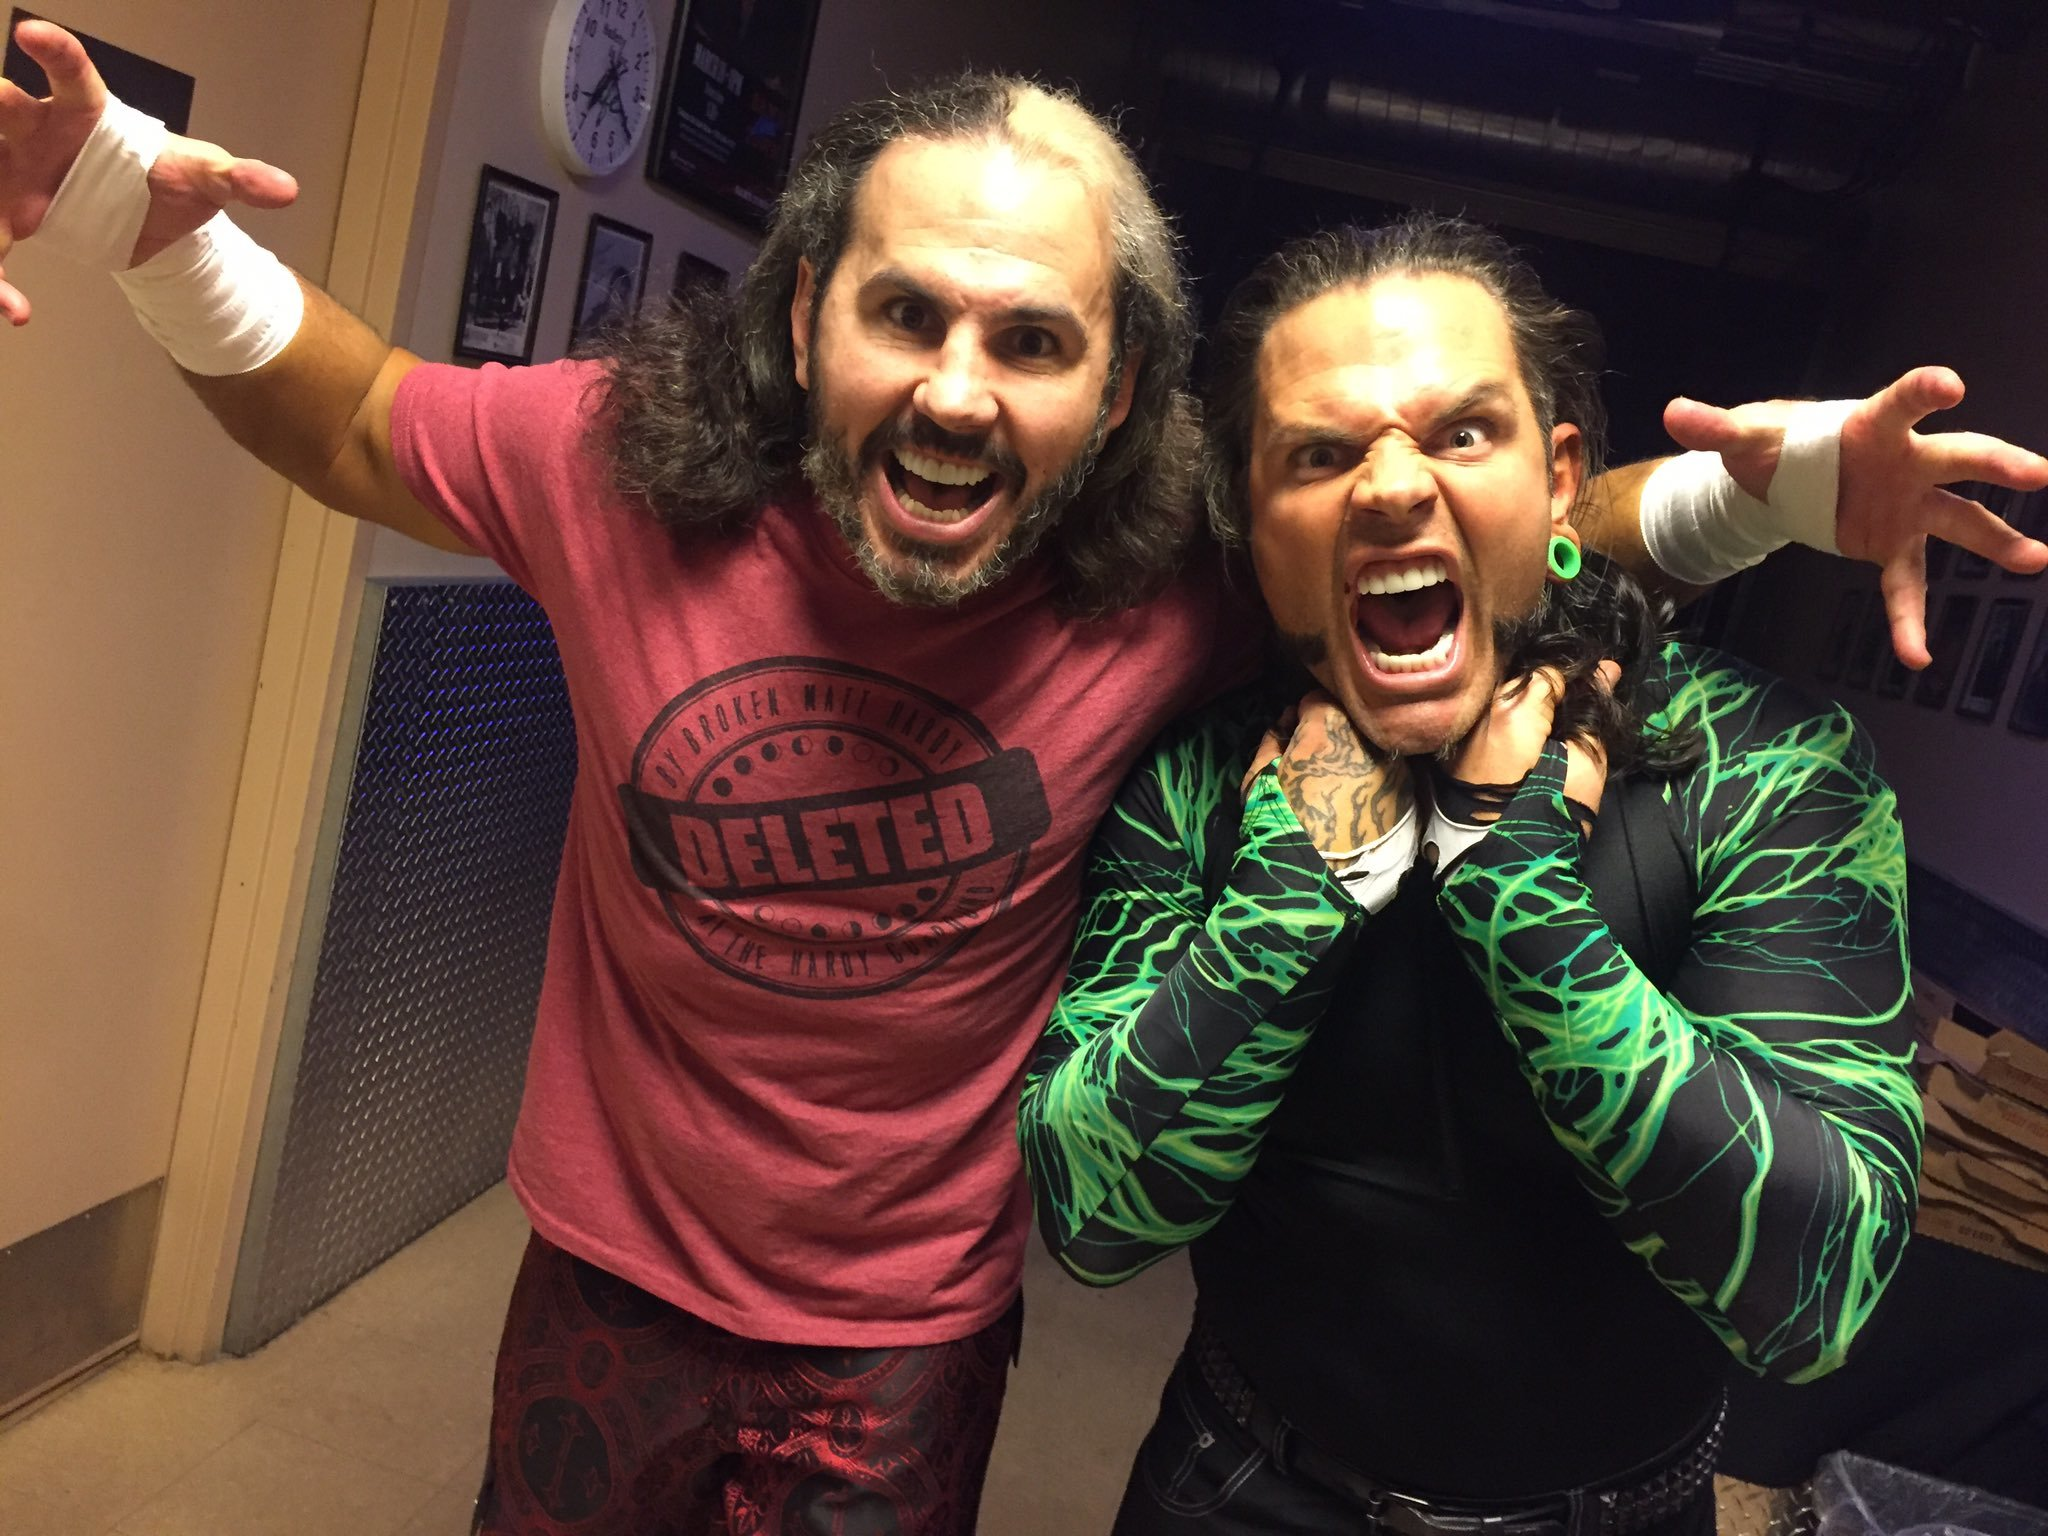 the-hardy-boyz-and-impact-wrestling-legal-woes-1489446164.jpg